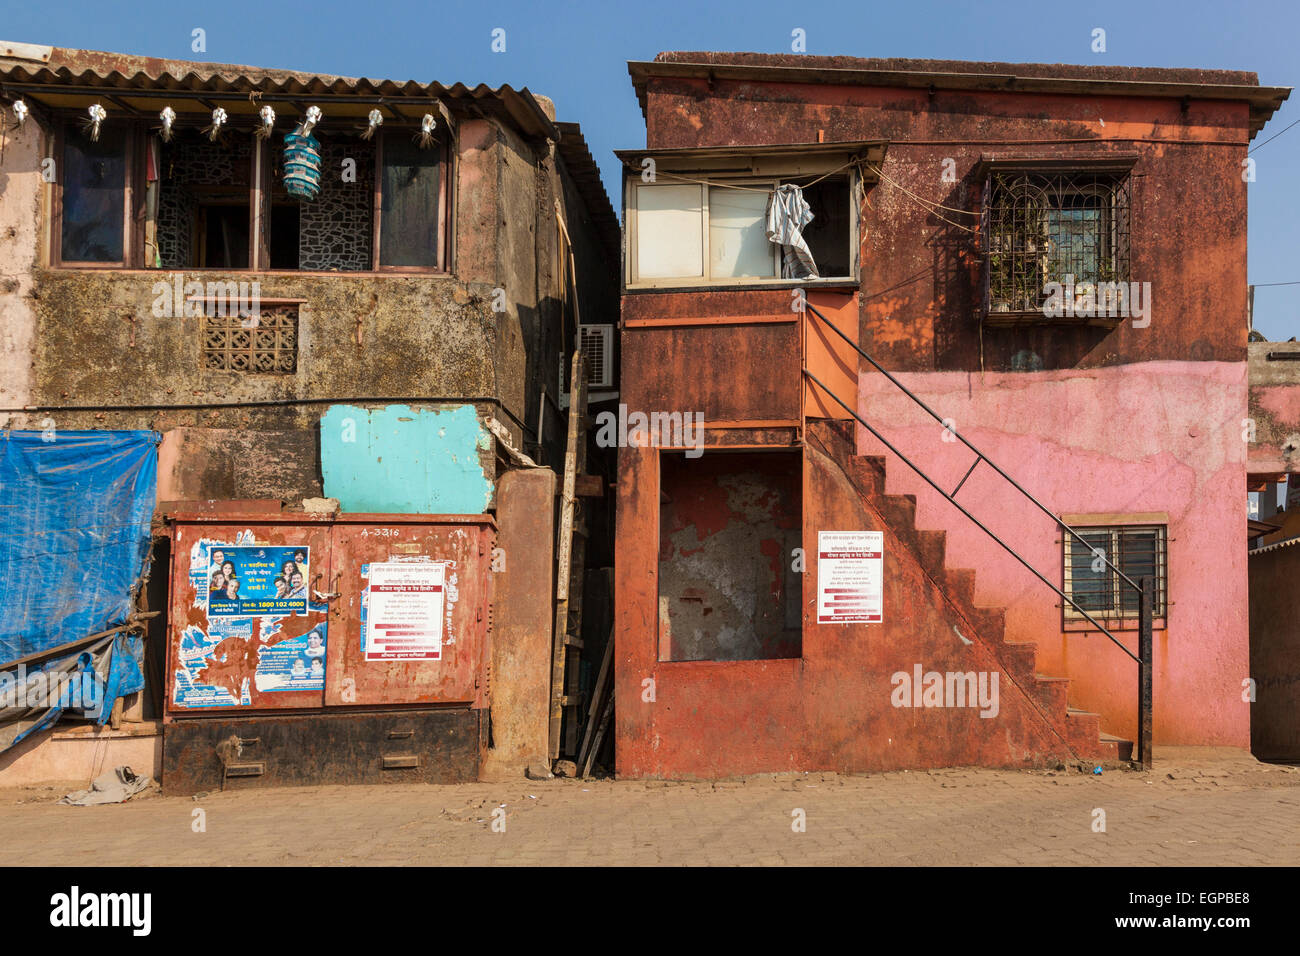 residential mobile home html with Stock Photo Colourful Houses In Worli Fishing Village Mumbai India 79167936 on Schema Branchement Cablage Contacteur in addition Stock Photo Aerial View Above Alta Plaza Park Pacific Heights San Francisco Landscape 13246771 furthermore Jaimes R together with S les additionally Stock Photo Coastal Fishing Village In Philippines About 800000 Fishermen Use 68154209.